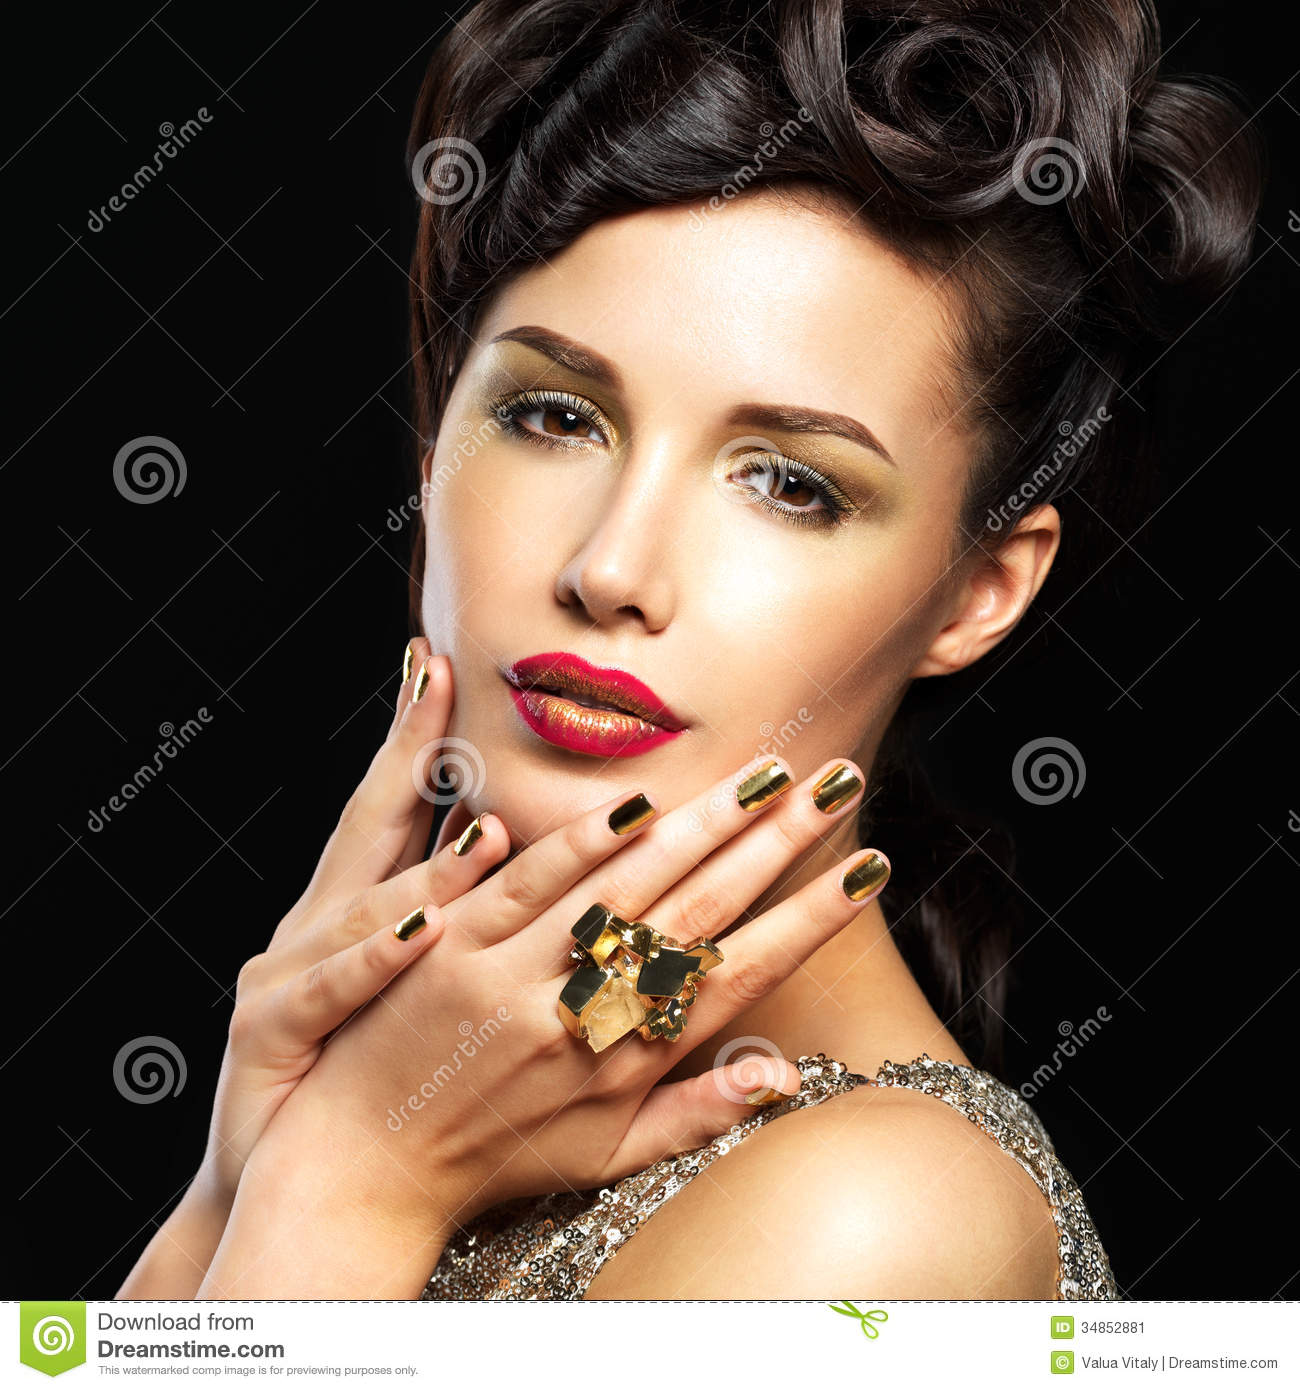 Fashion Beauty Model Girl Stock Image Image Of Manicured: Beautiful Woman With Golden Nails And Fashion Makeup Stock